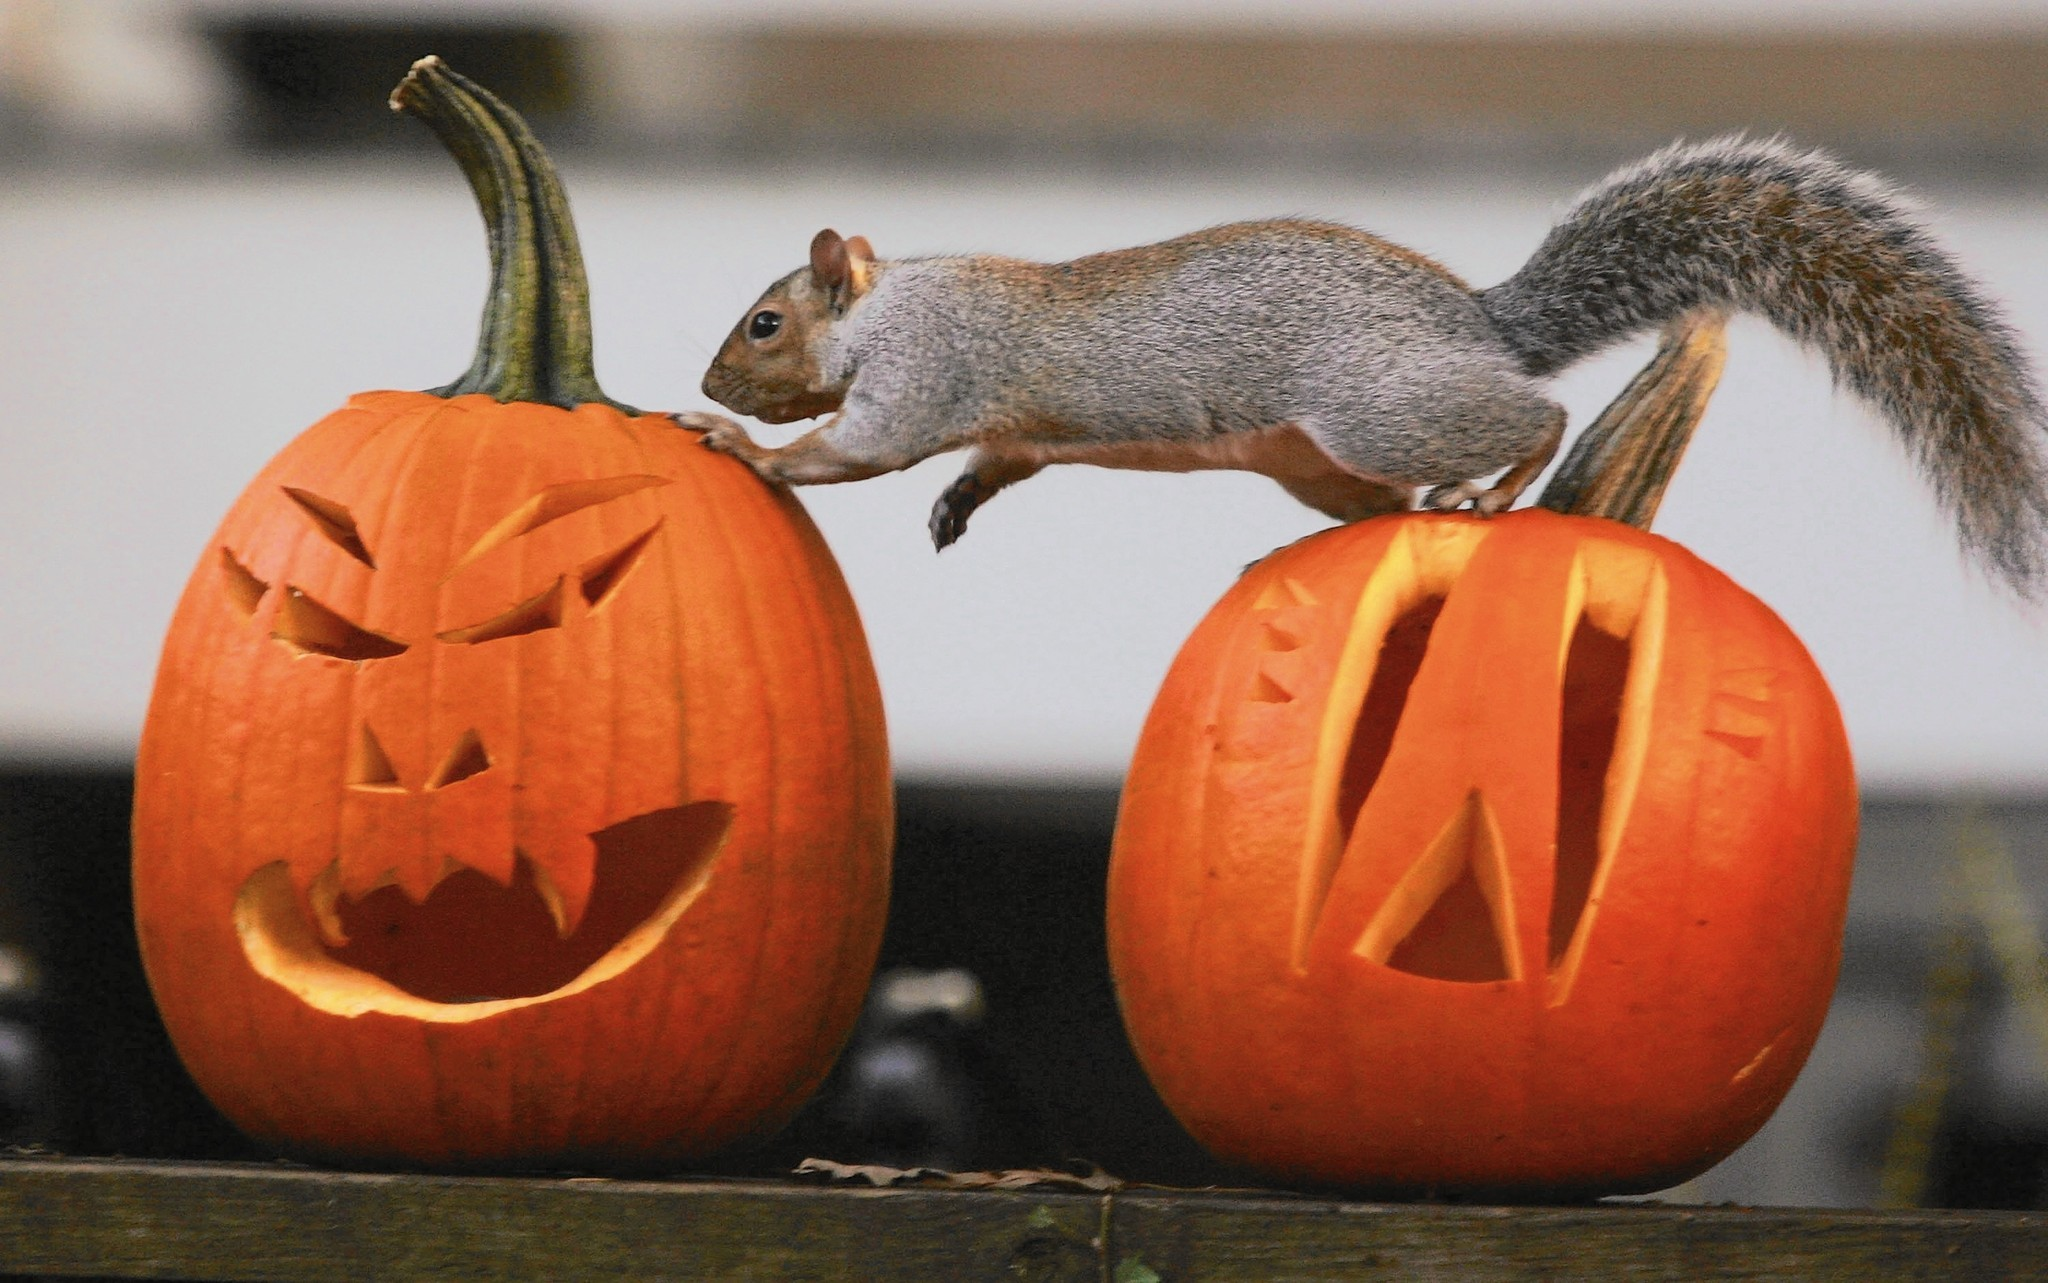 Pumpkins on porches an opportune snack for squirrels - Chicago Tribune